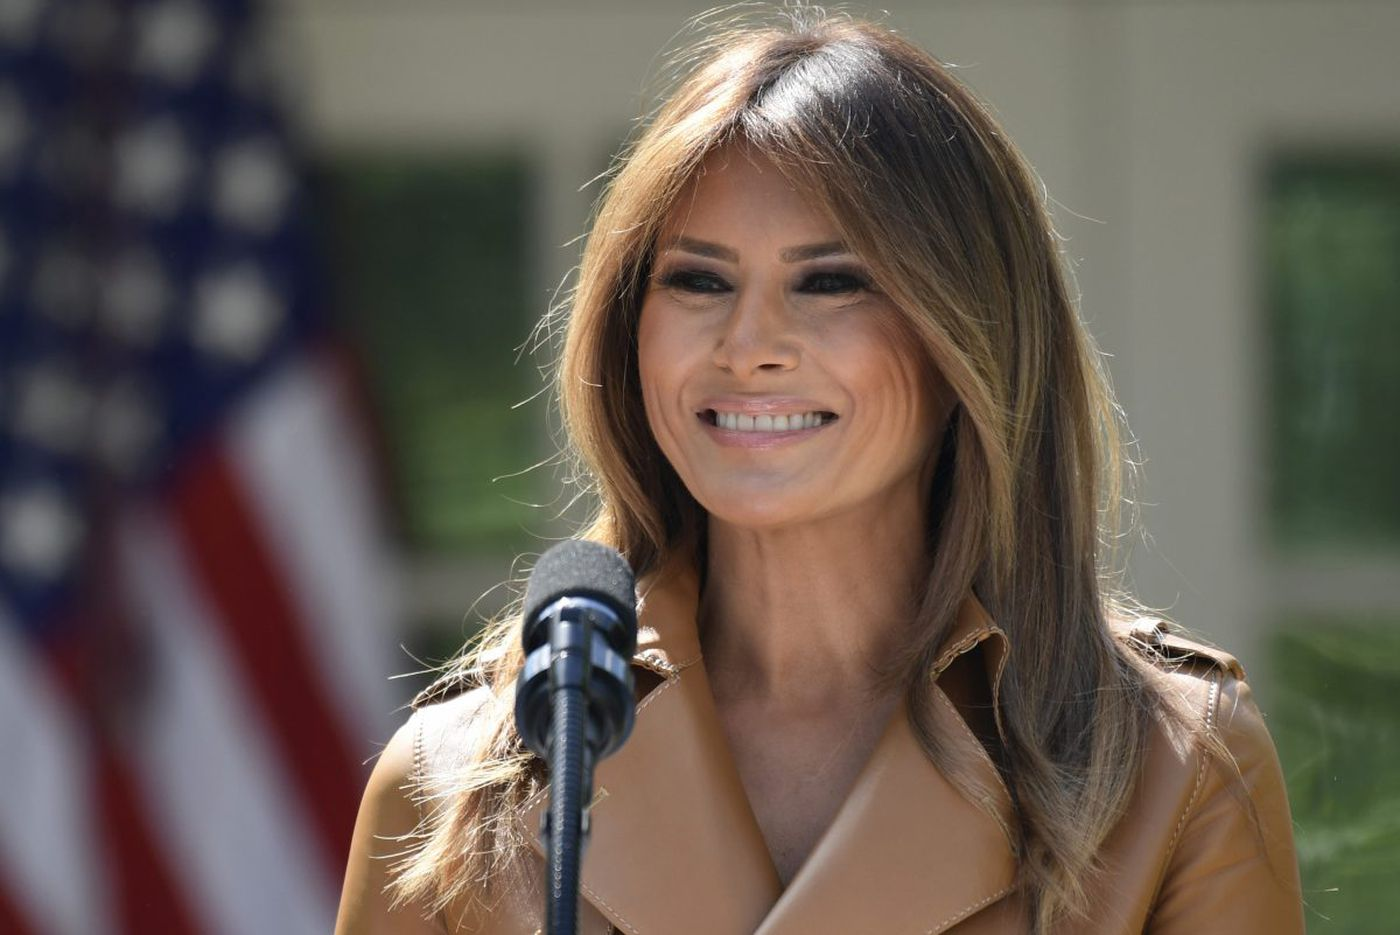 First lady's plane lands safely after mechanical issue